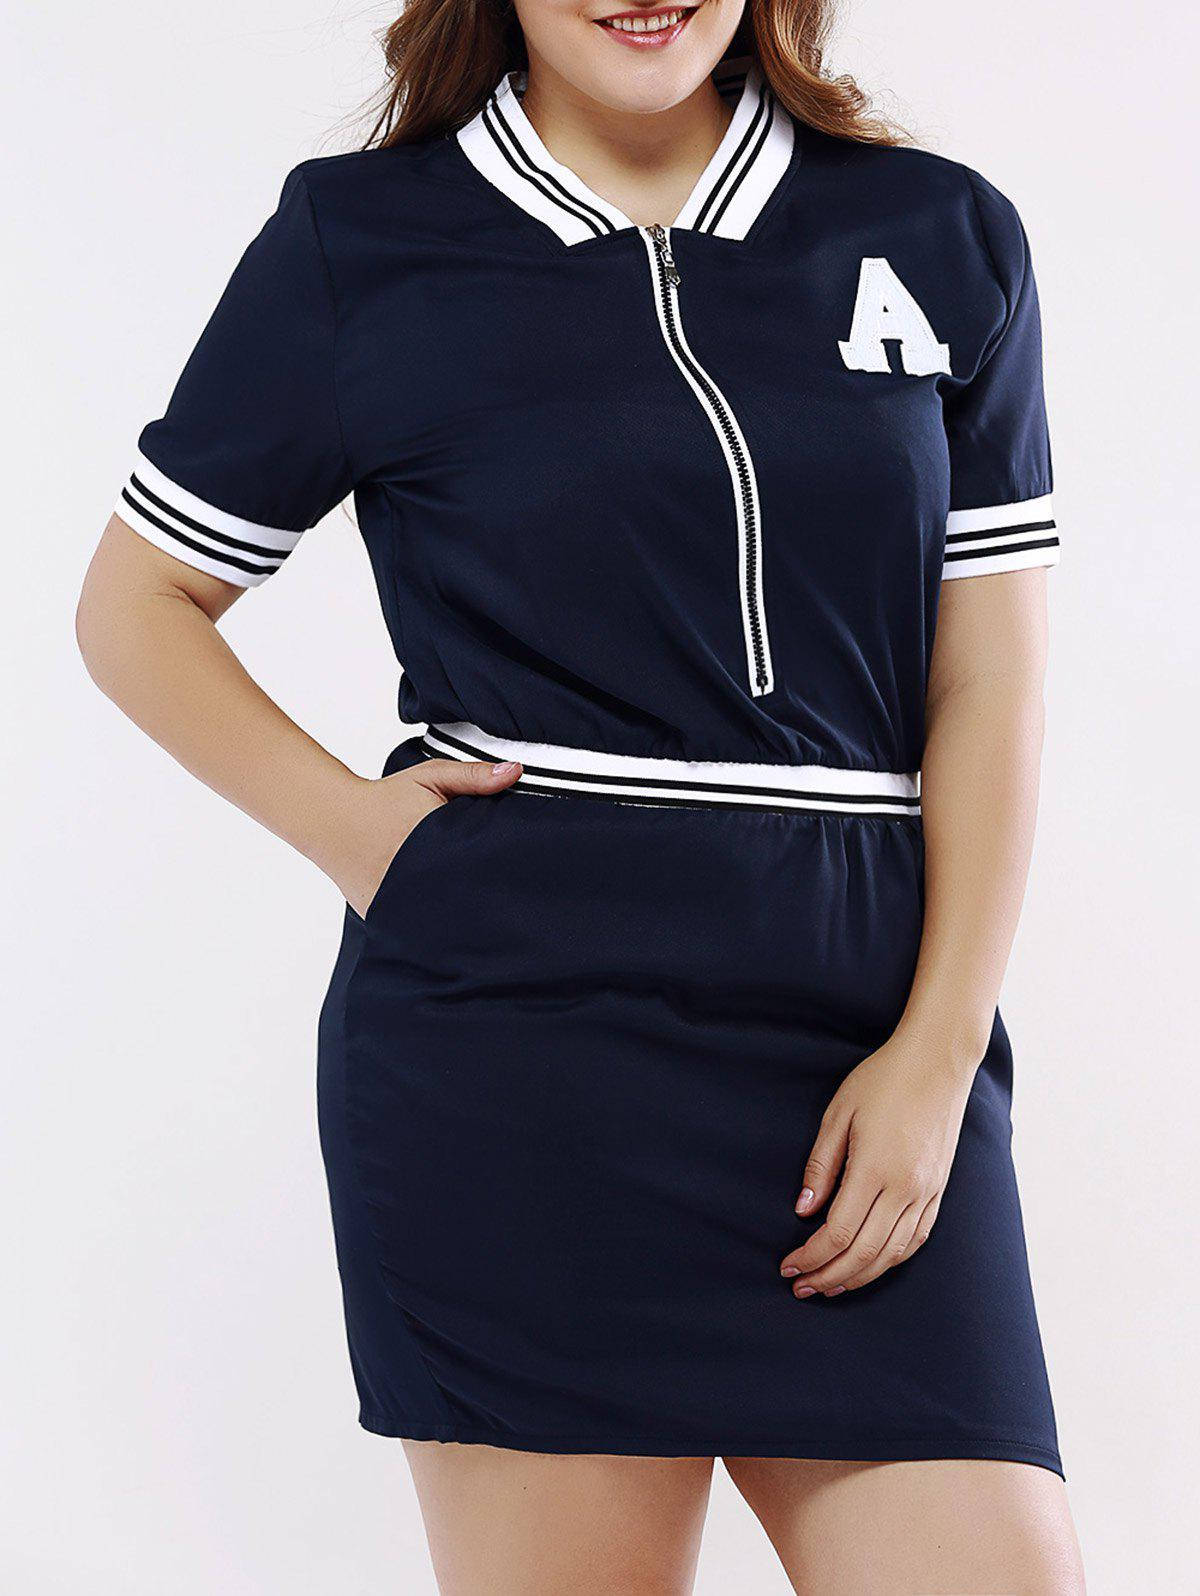 Casual Stand Collar Front Zipped Dress For Women - DEEP BLUE 5XL